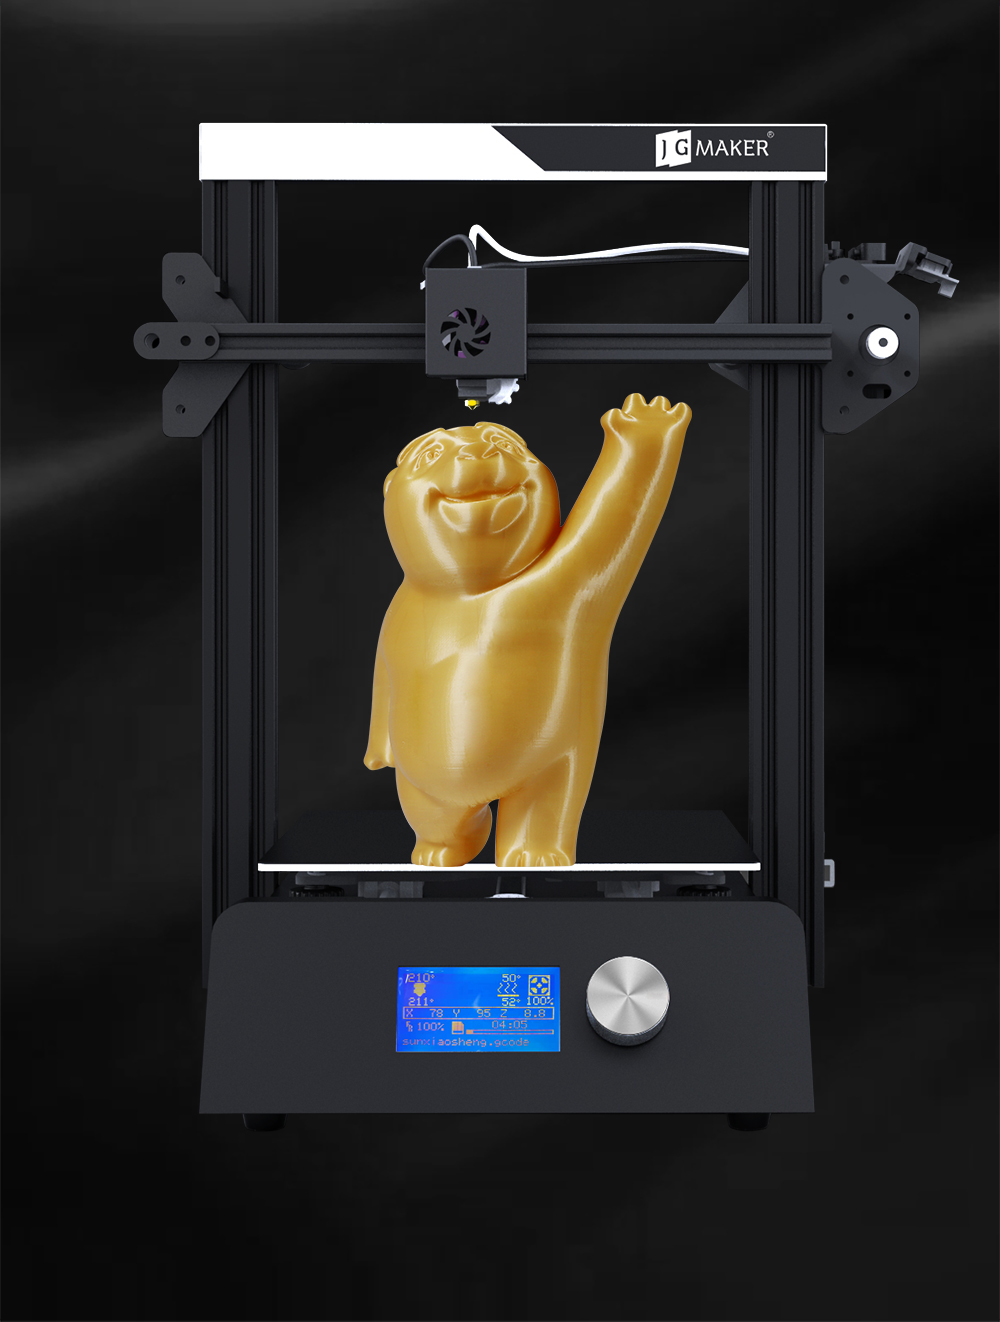 JGMaker Magic 3D Printer